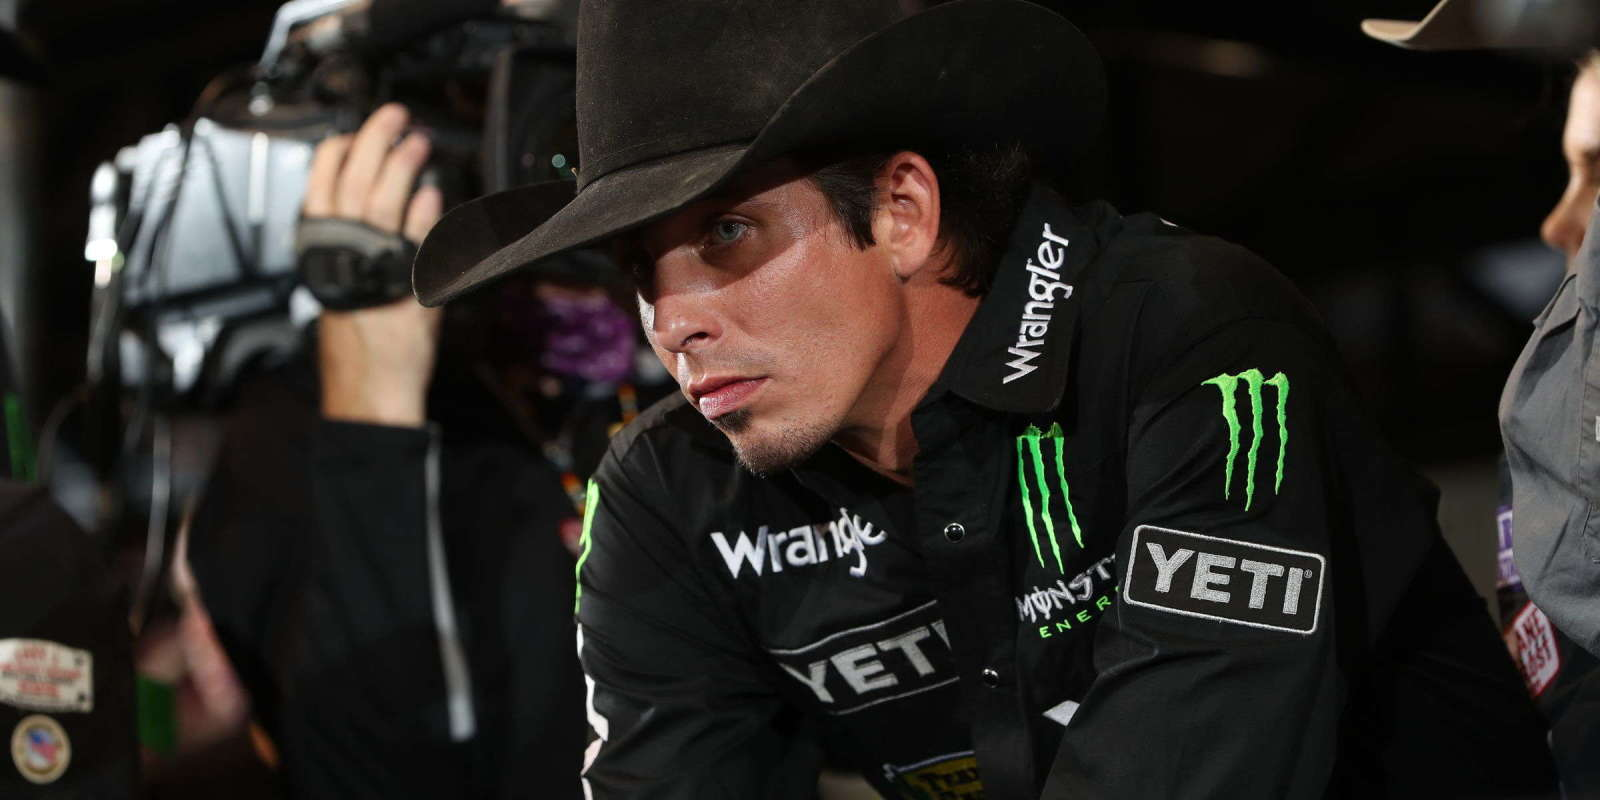 24d005356a3b7 Monster Energy bull riders readying themselves for PBR World Finals